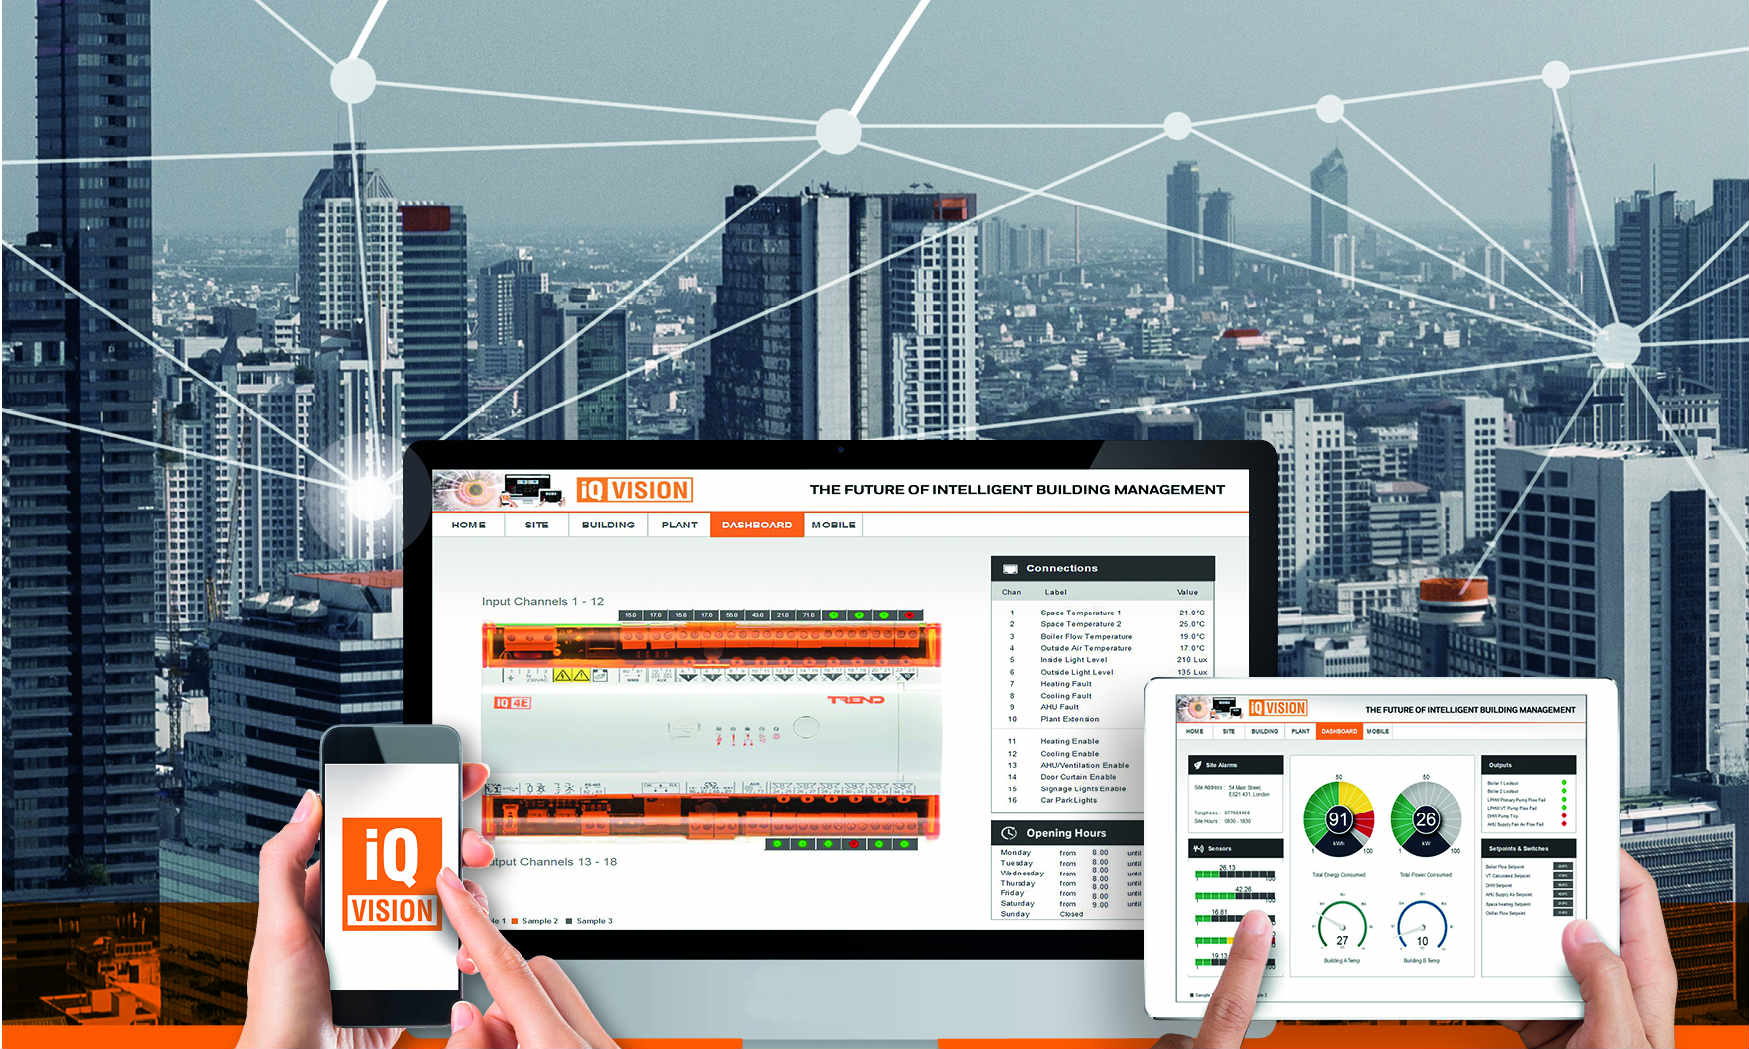 Trend announces latest development of its successful IQ™VISION Software to monitor, manage and control smart buildings & estates